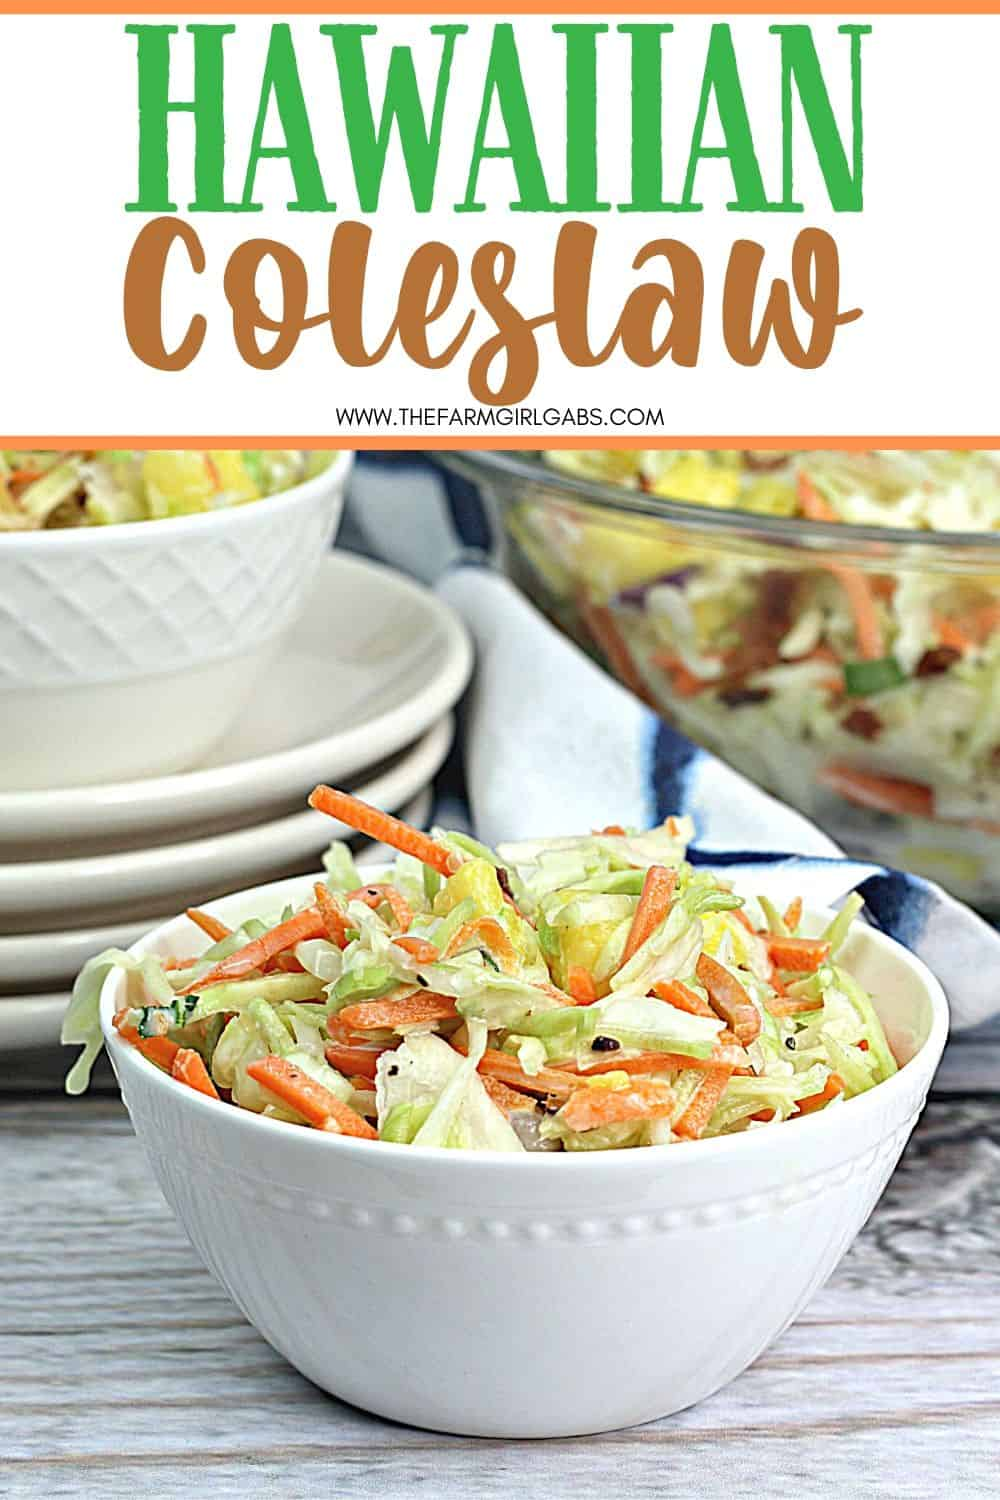 This Hawaiian Coleslaw recipe (or pineapple slaw) is zesty, crunchy and balanced with sweet pineapple flavor. This easy slaw recipe is a tasty twist on the classic coleslaw.